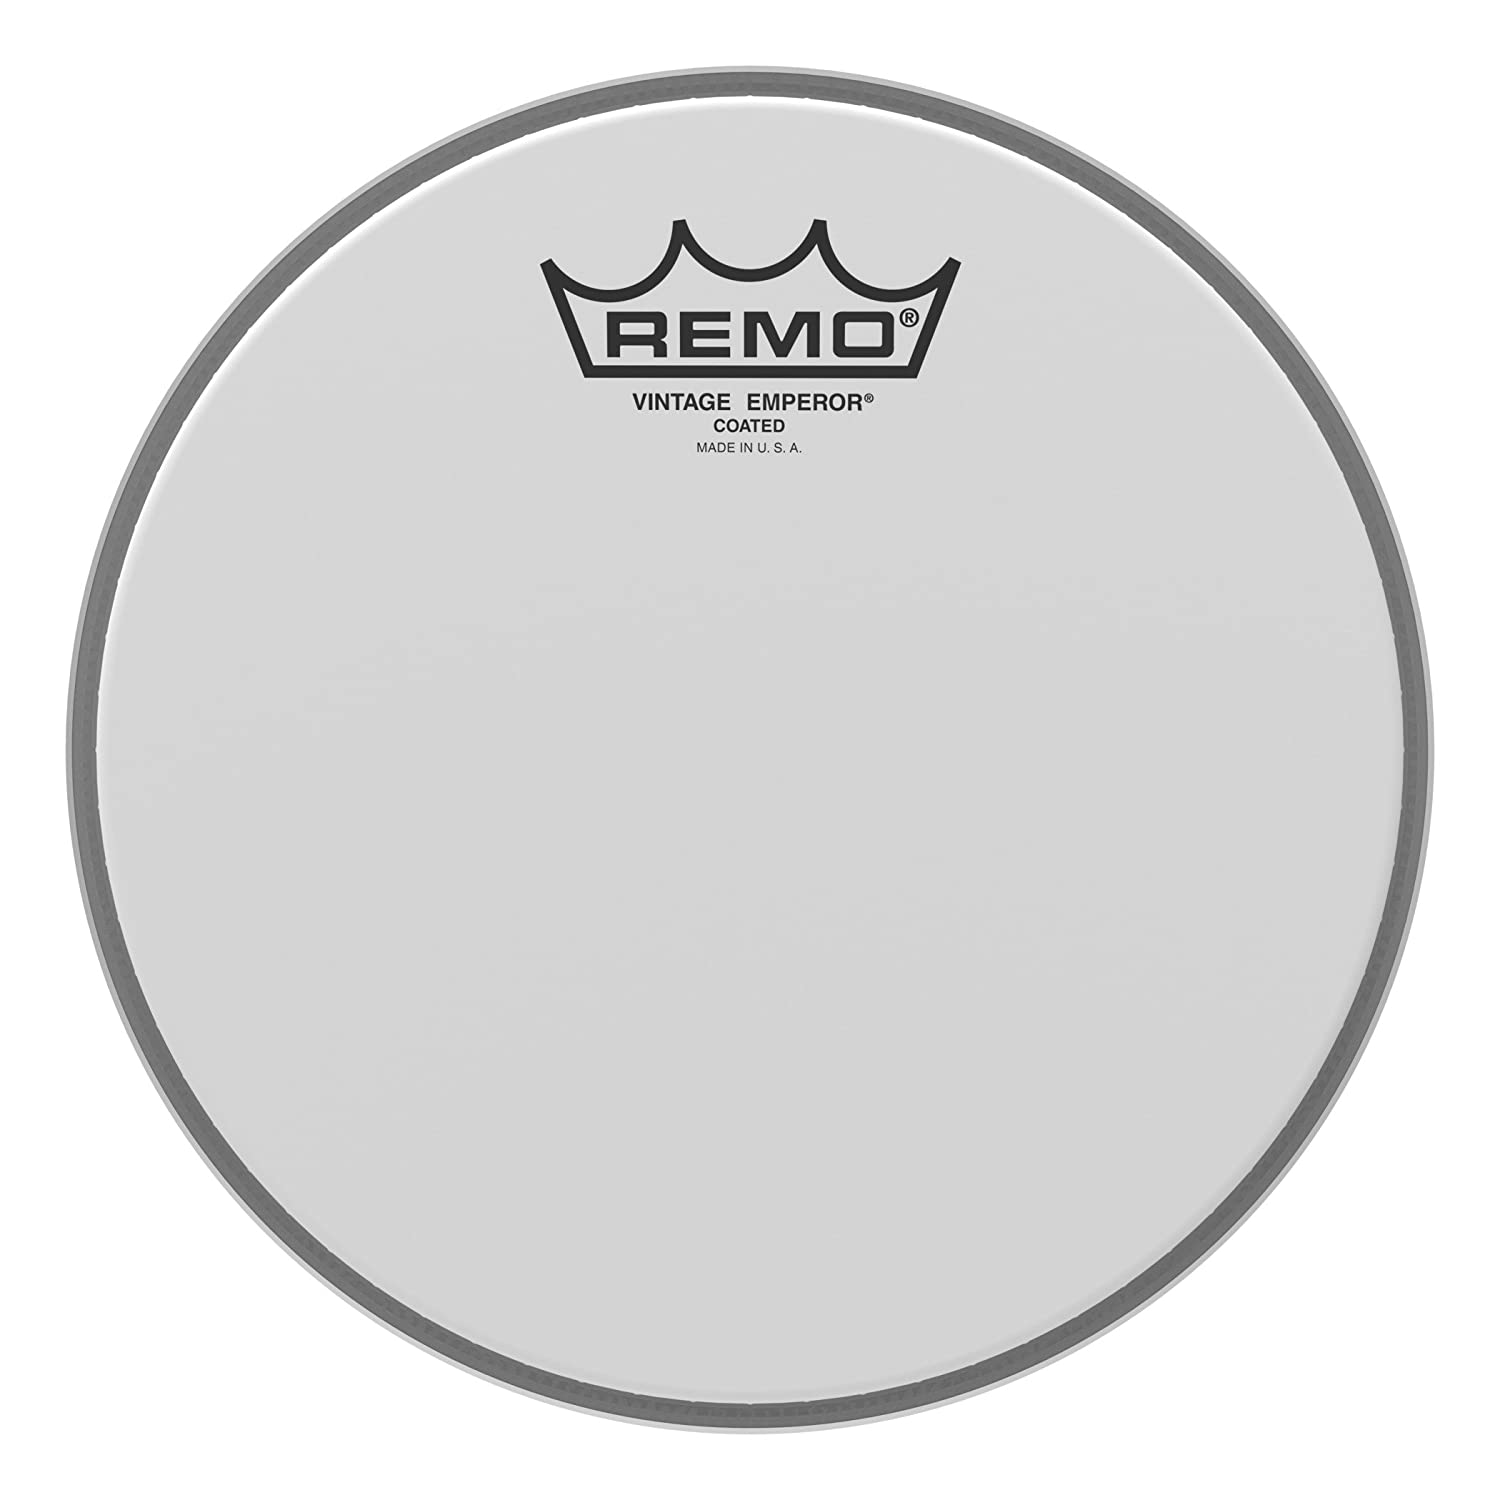 Remo VE0118-00 Vintage Emperor Coated Drum Head (18-Inch) Remo Inc. VE011800